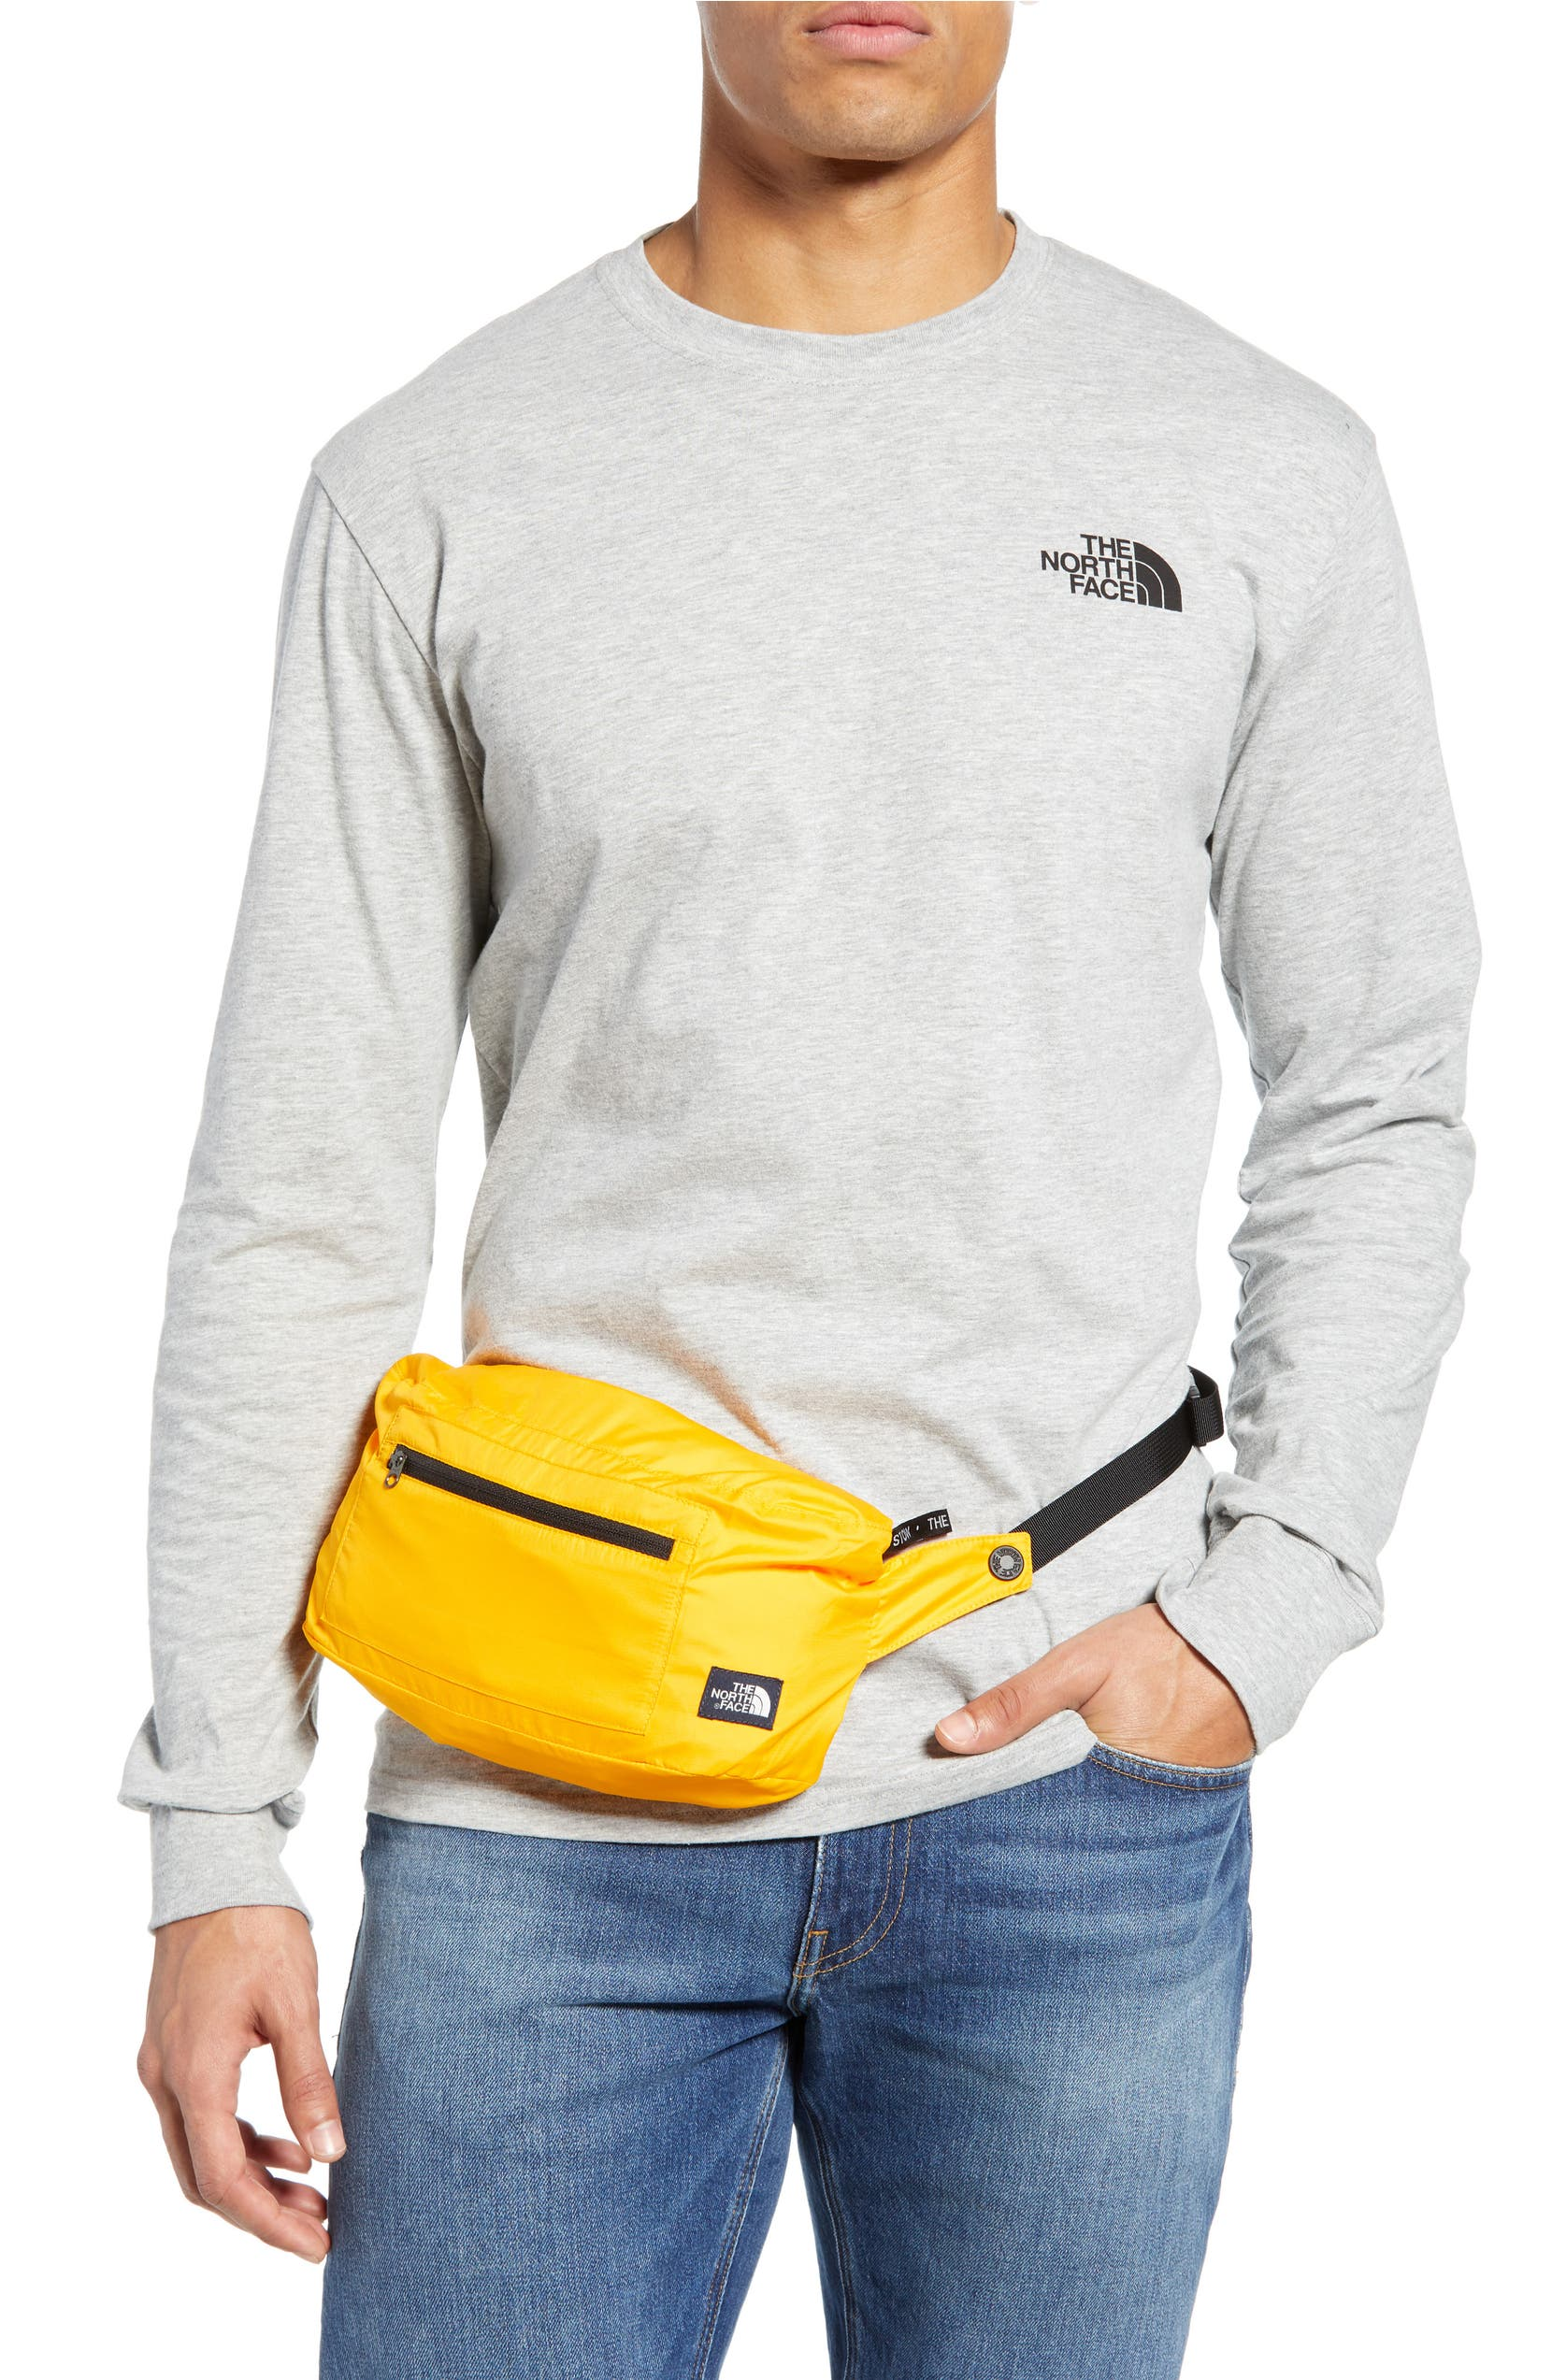 faff1dd3d7b91 The North Face Fanorak Pullover   Nordstrom